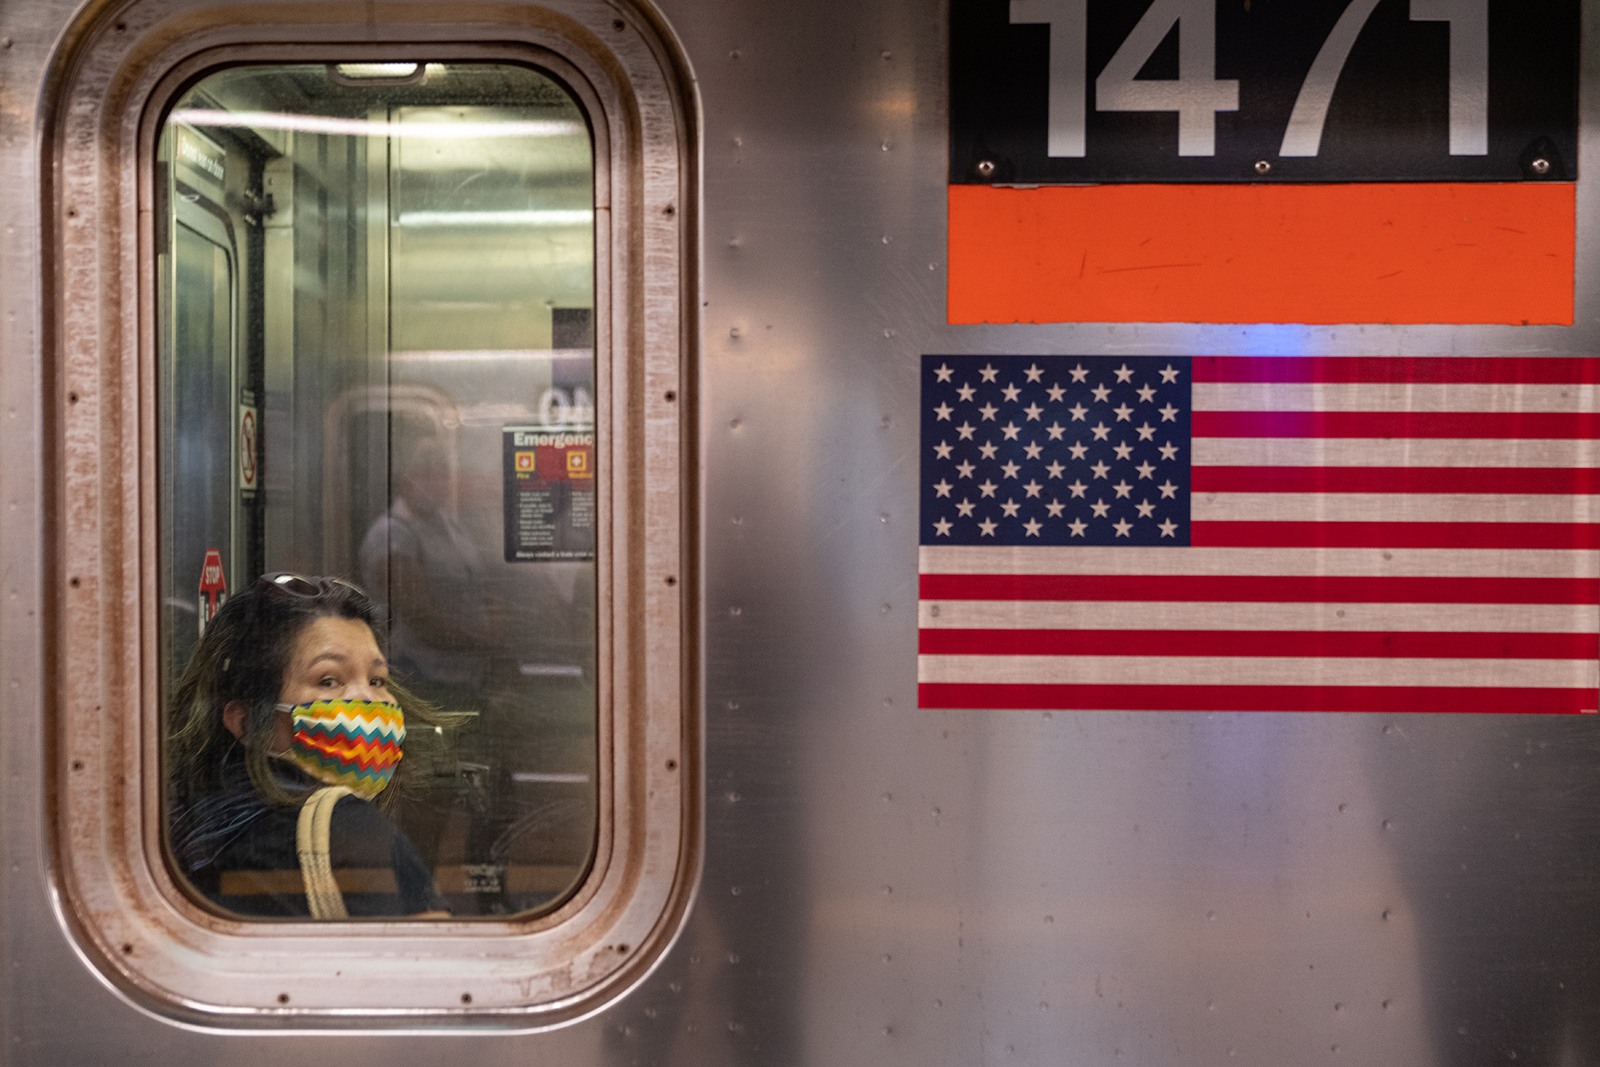 A woman wearing a mask rides the subway during rush hour on June 8, in New York City.